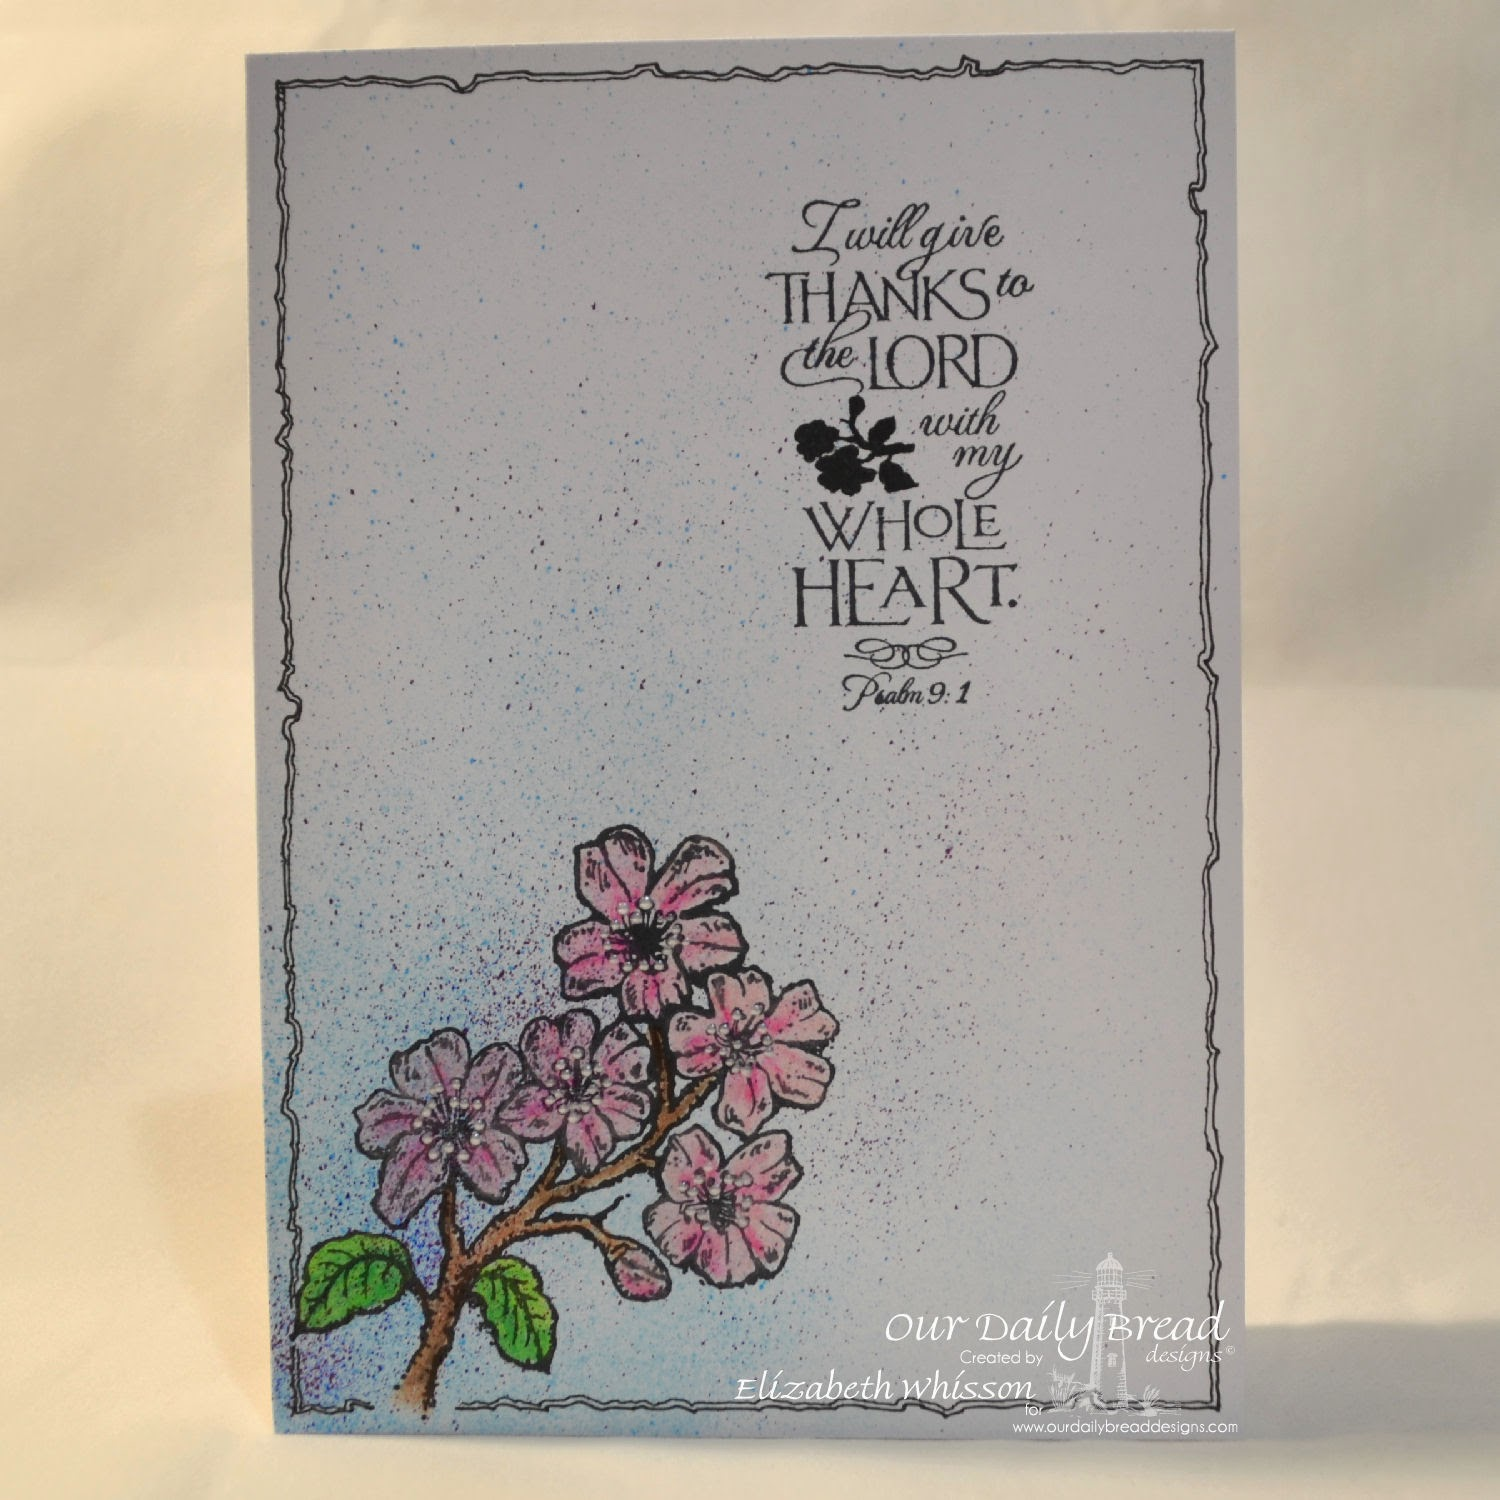 Elizabeth Whisson, Our Daily Bread Designs, ODBD, Psalm 9:1, Cherry Blossom, handmade card, one layer, CAS